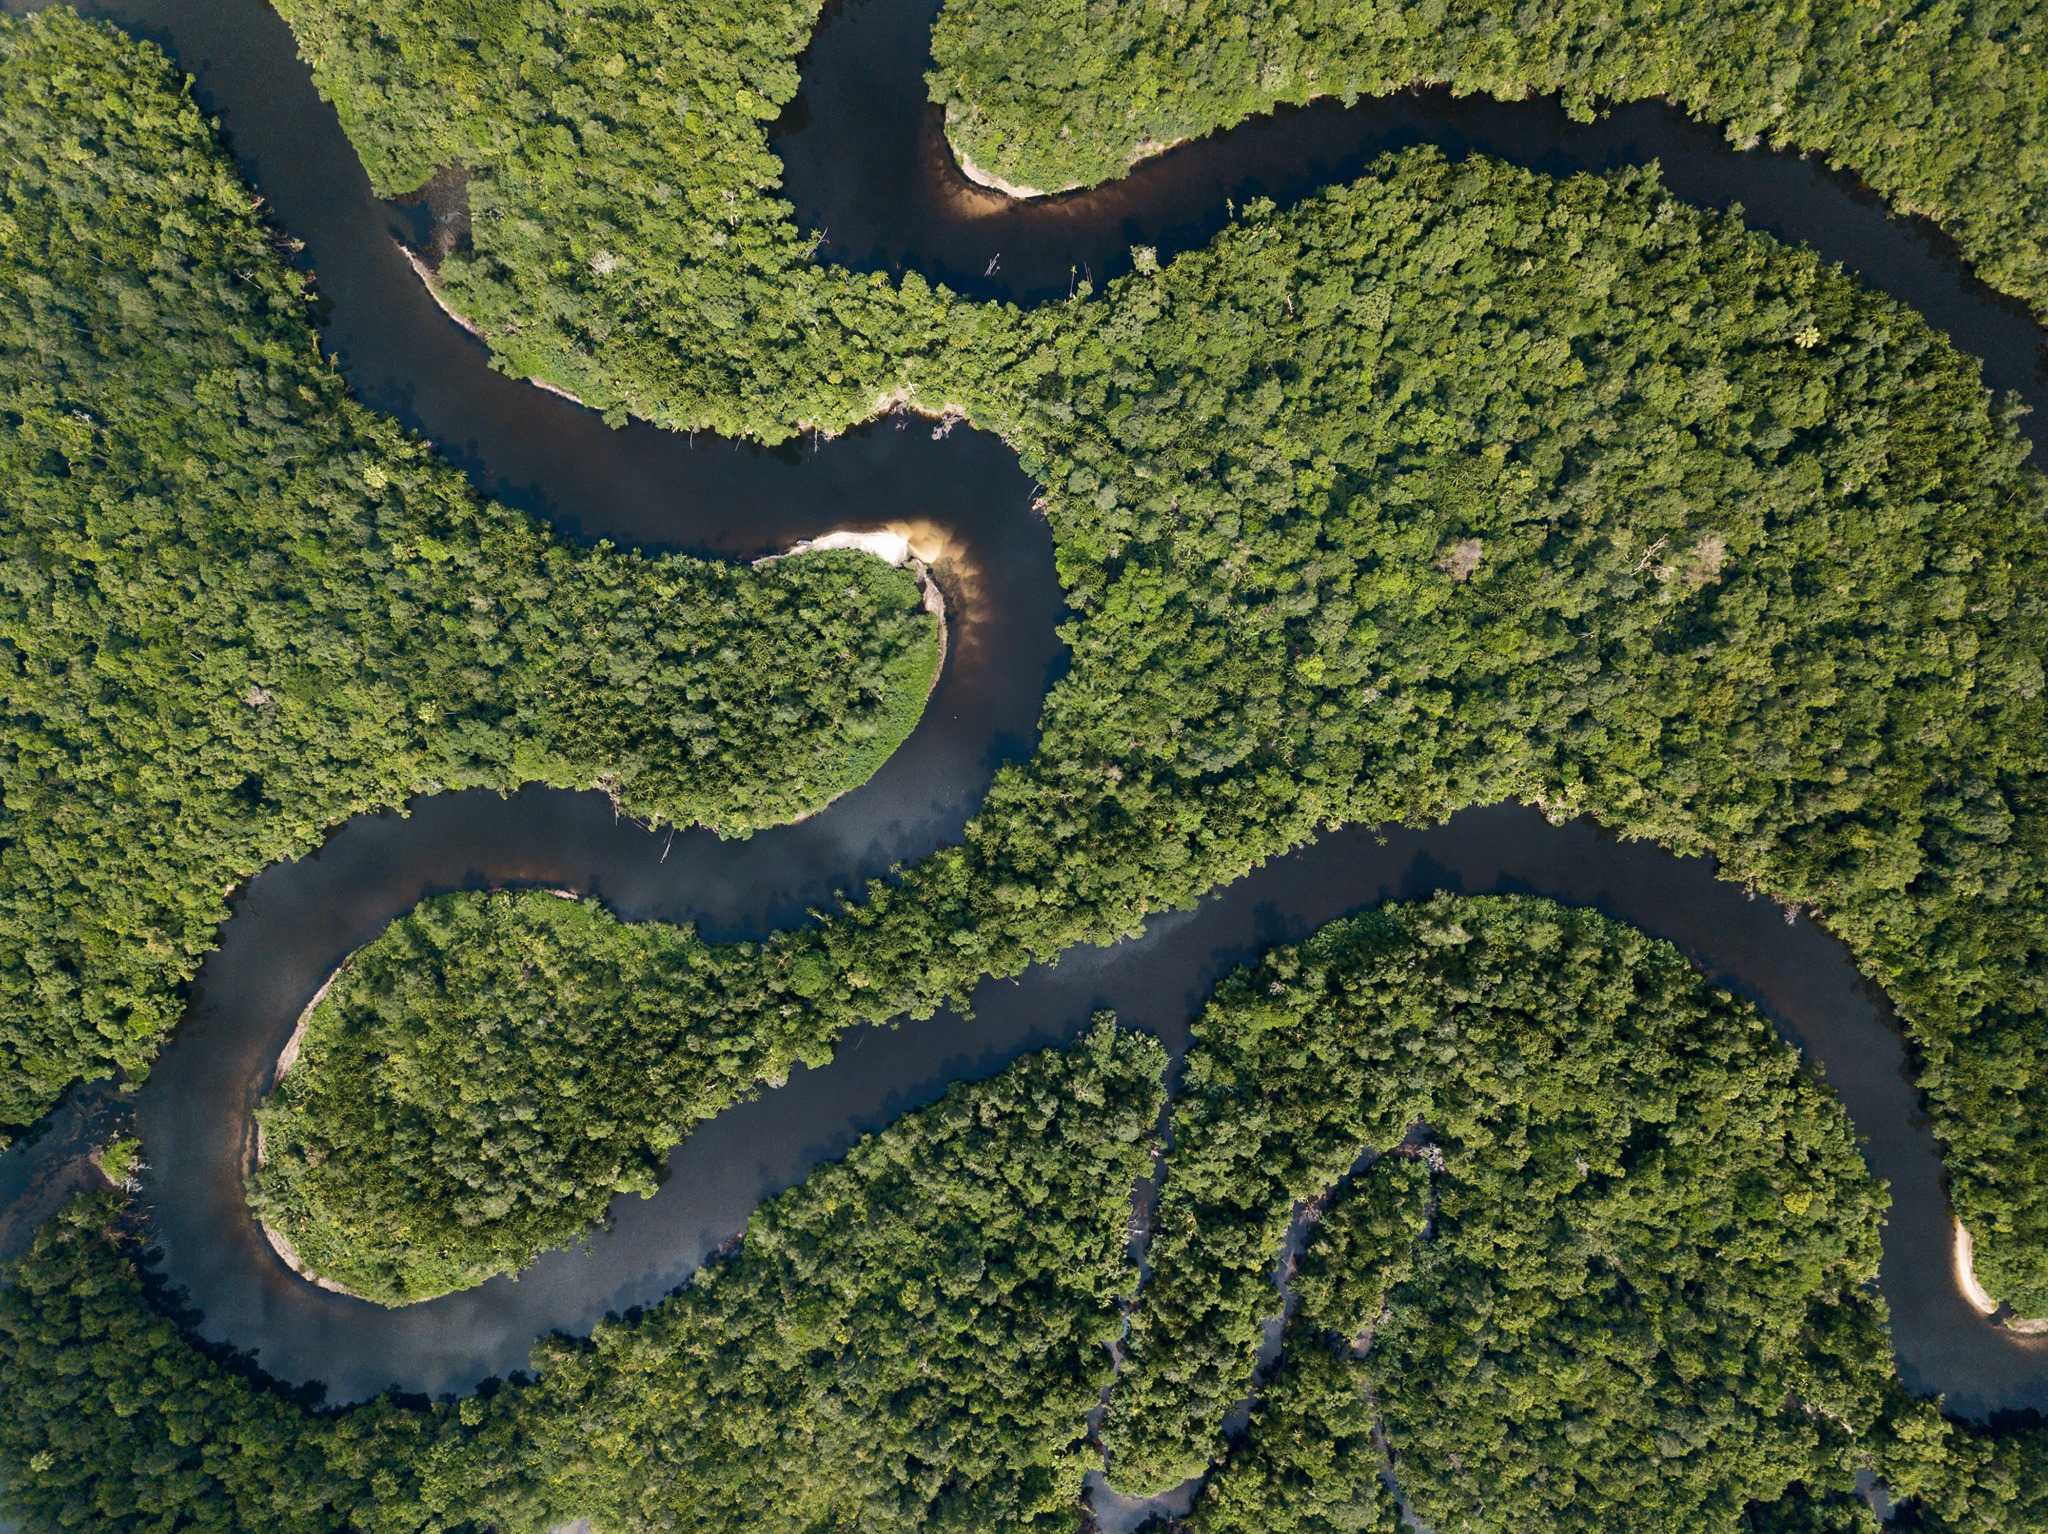 5 ways you can help save rainforests in Asia